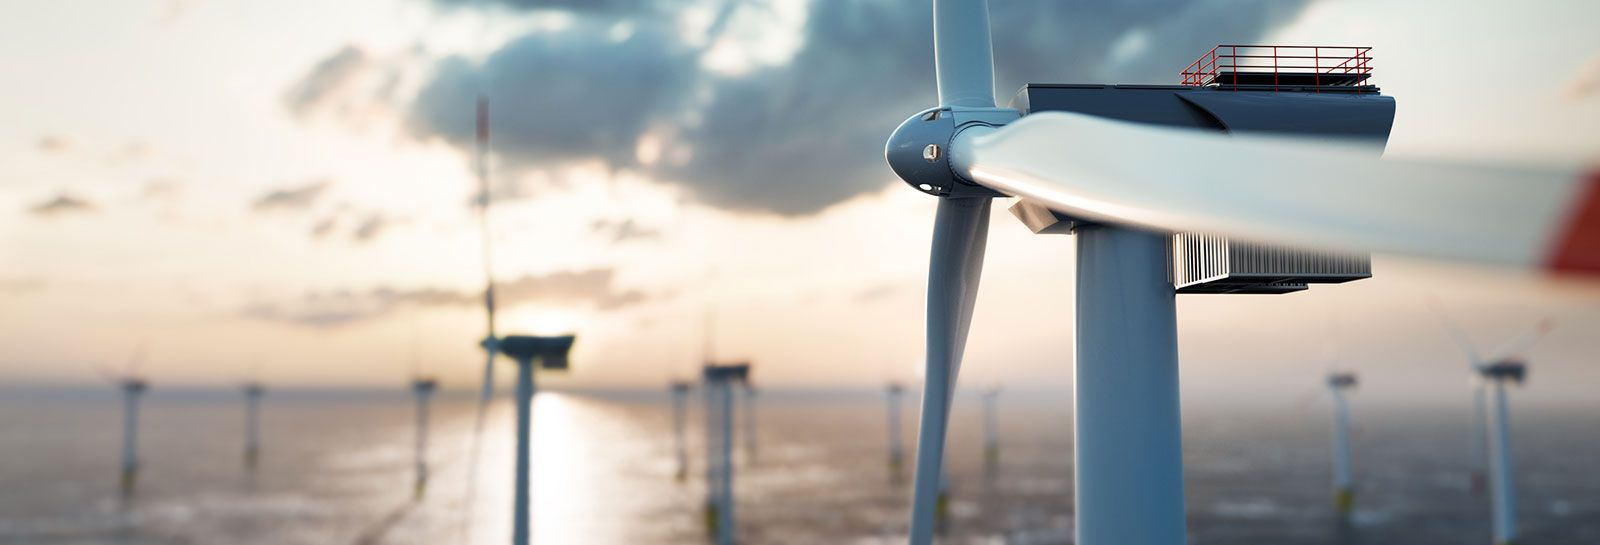 Wind turbines in the sea banner image